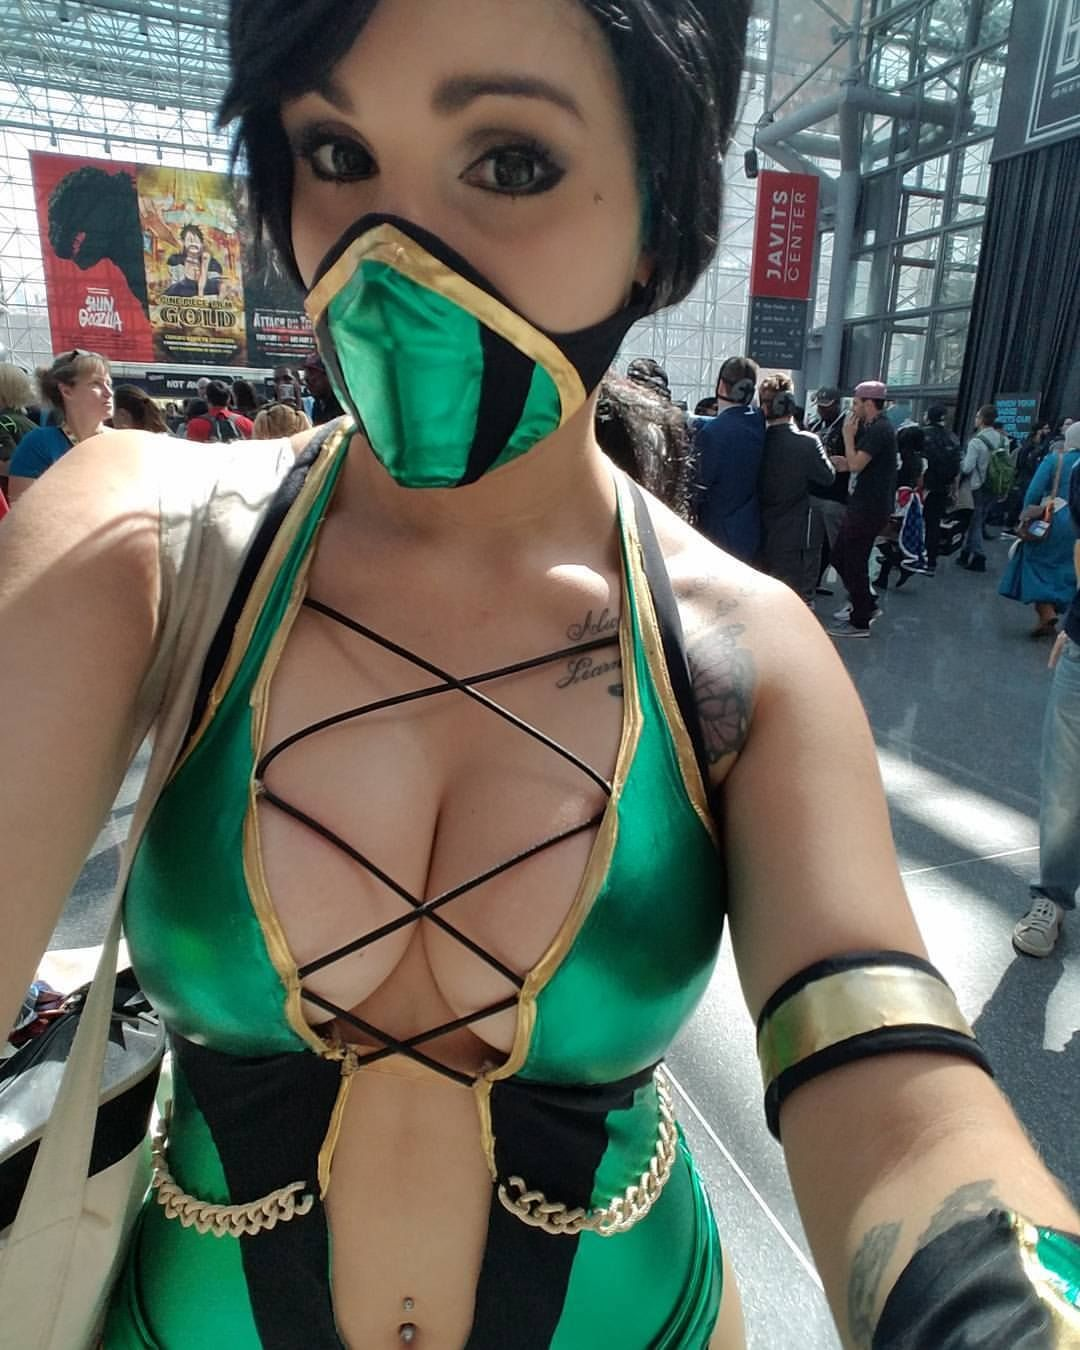 Mortal Kombat Female Characters Names And Pictures - The